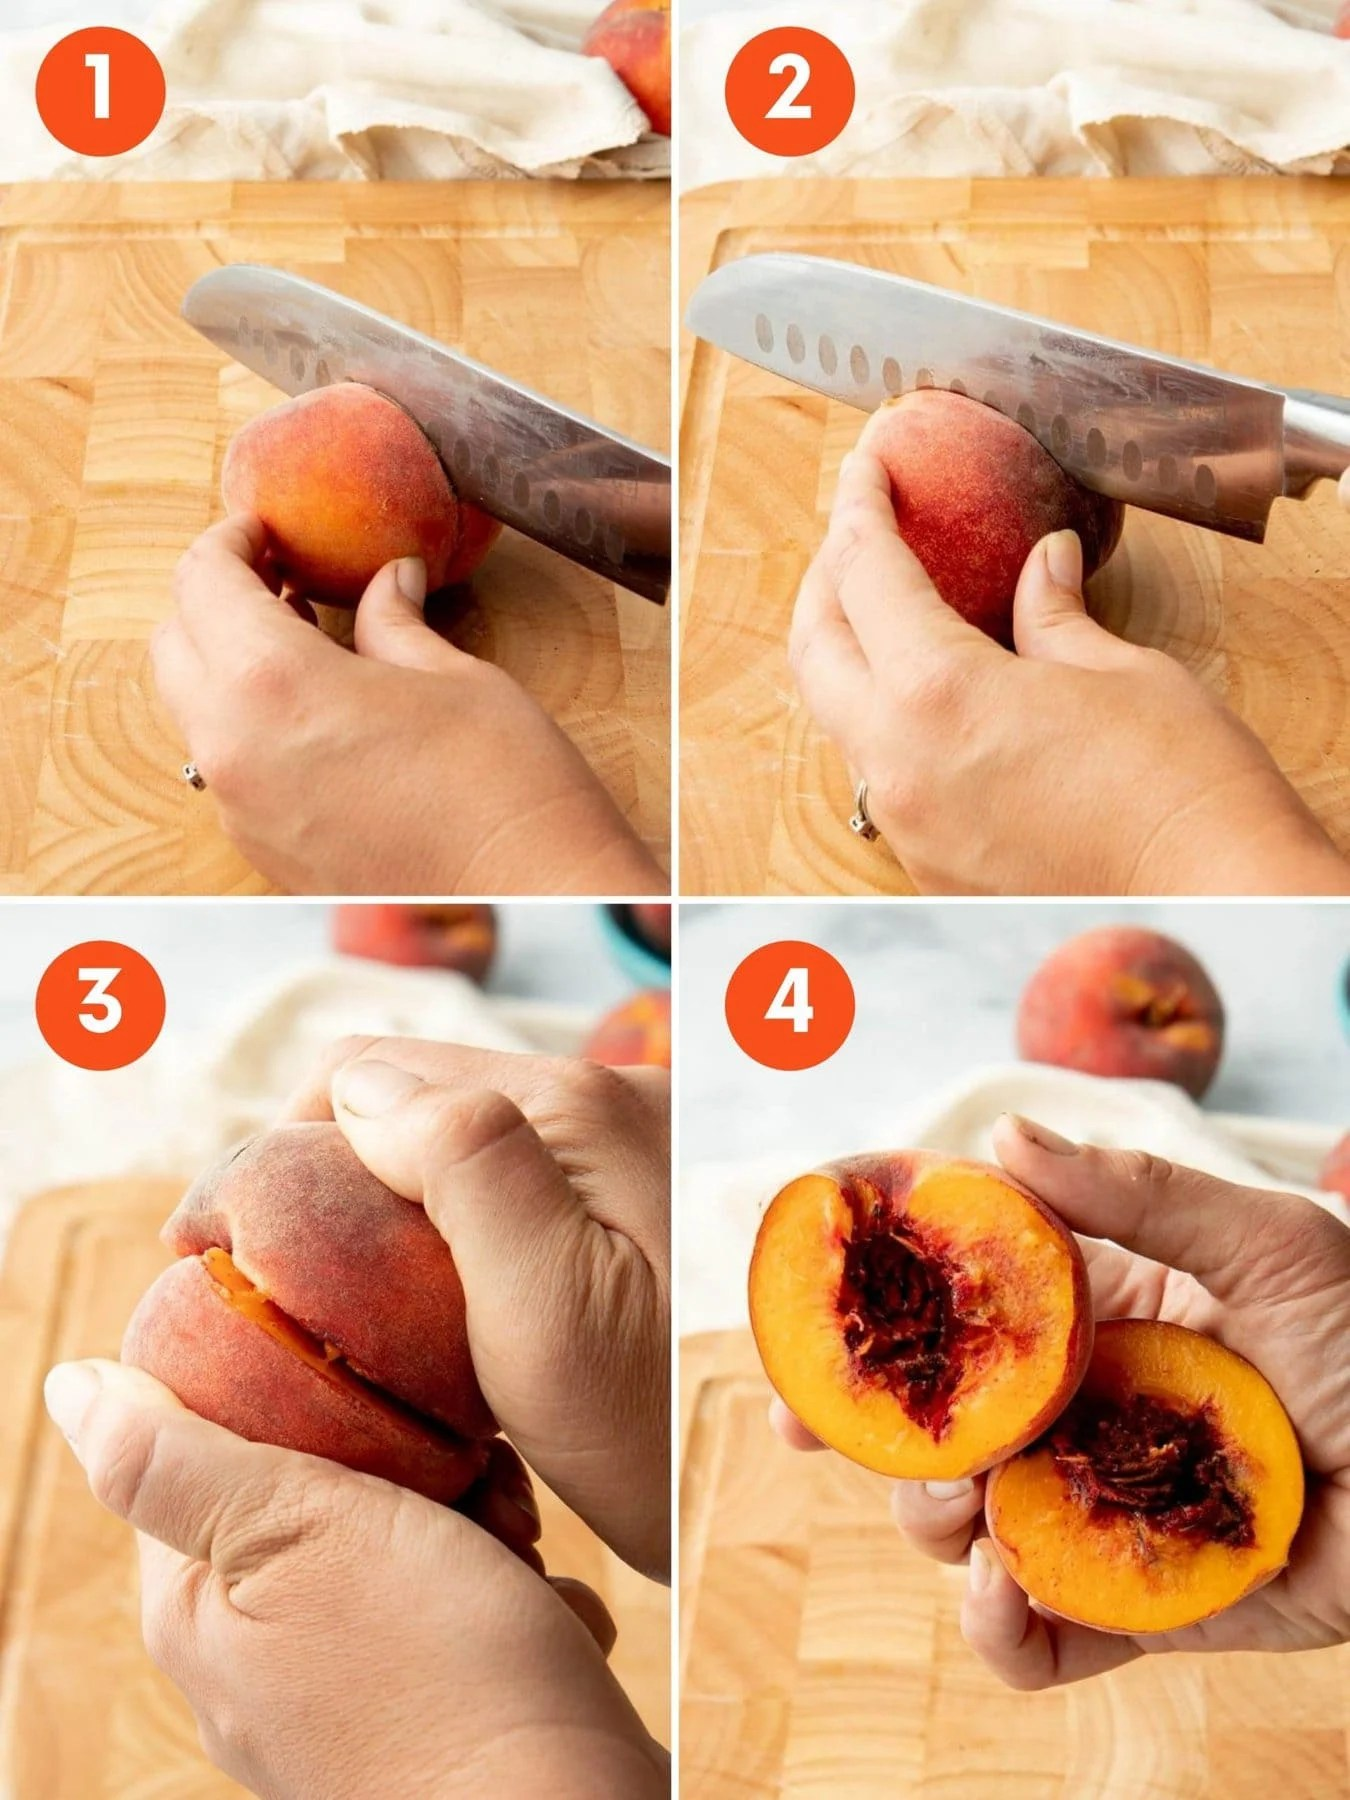 Collage of images showing how to pit a peach in 4 steps.